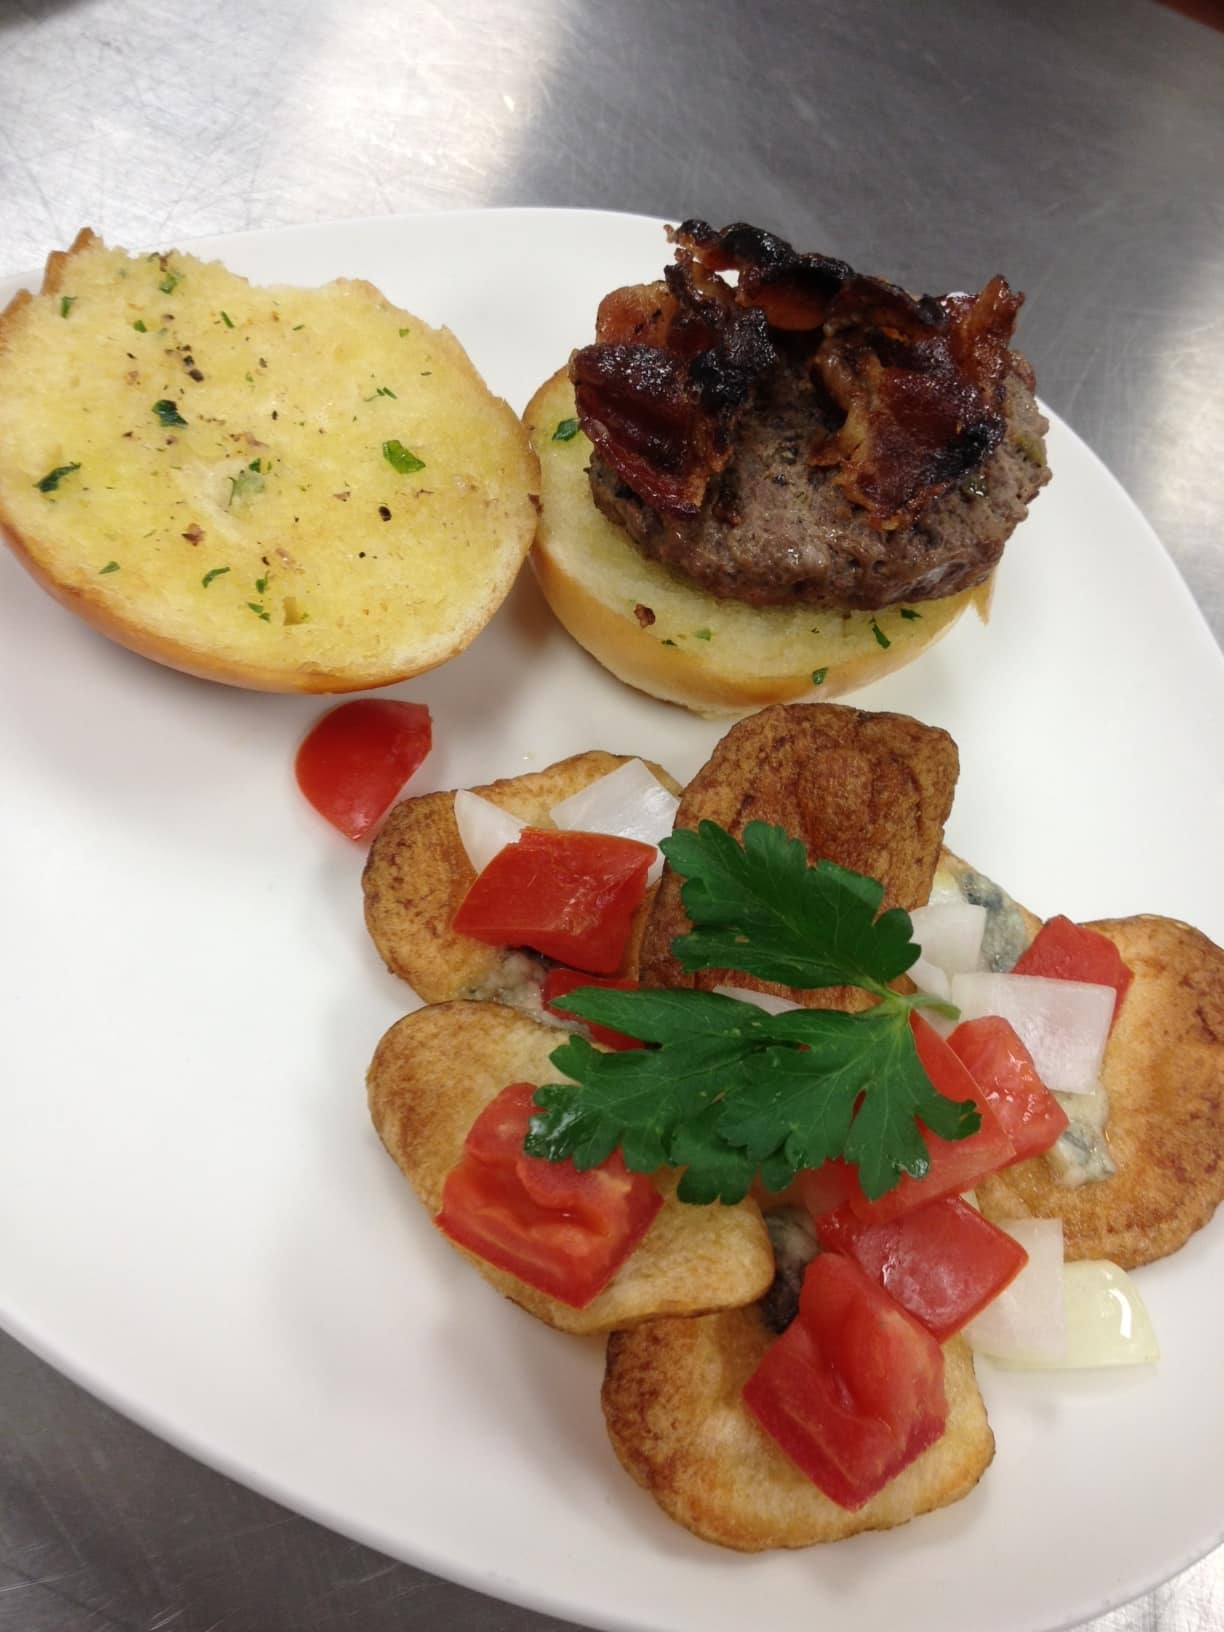 Super Bowl Treats from Sarasota's Center for Culinary Arts: Buffalo Burgers